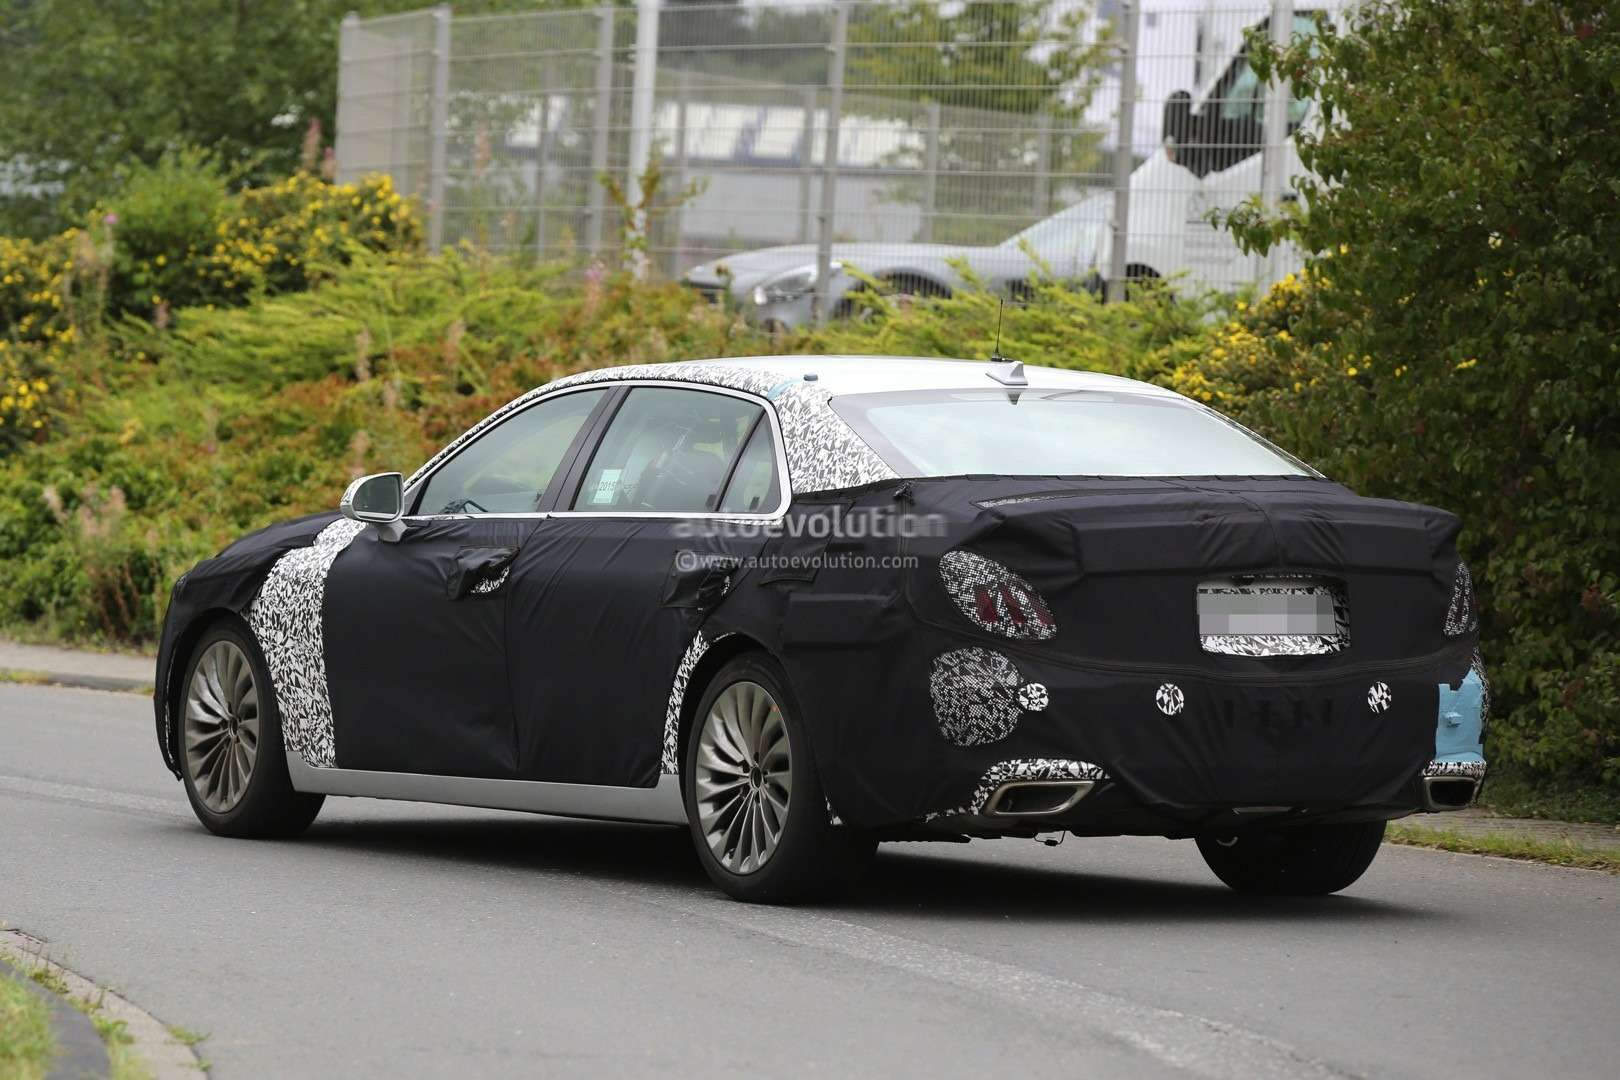 2017-hyundai-equus-spied-out-testing-in-germany-photo-gallery_13